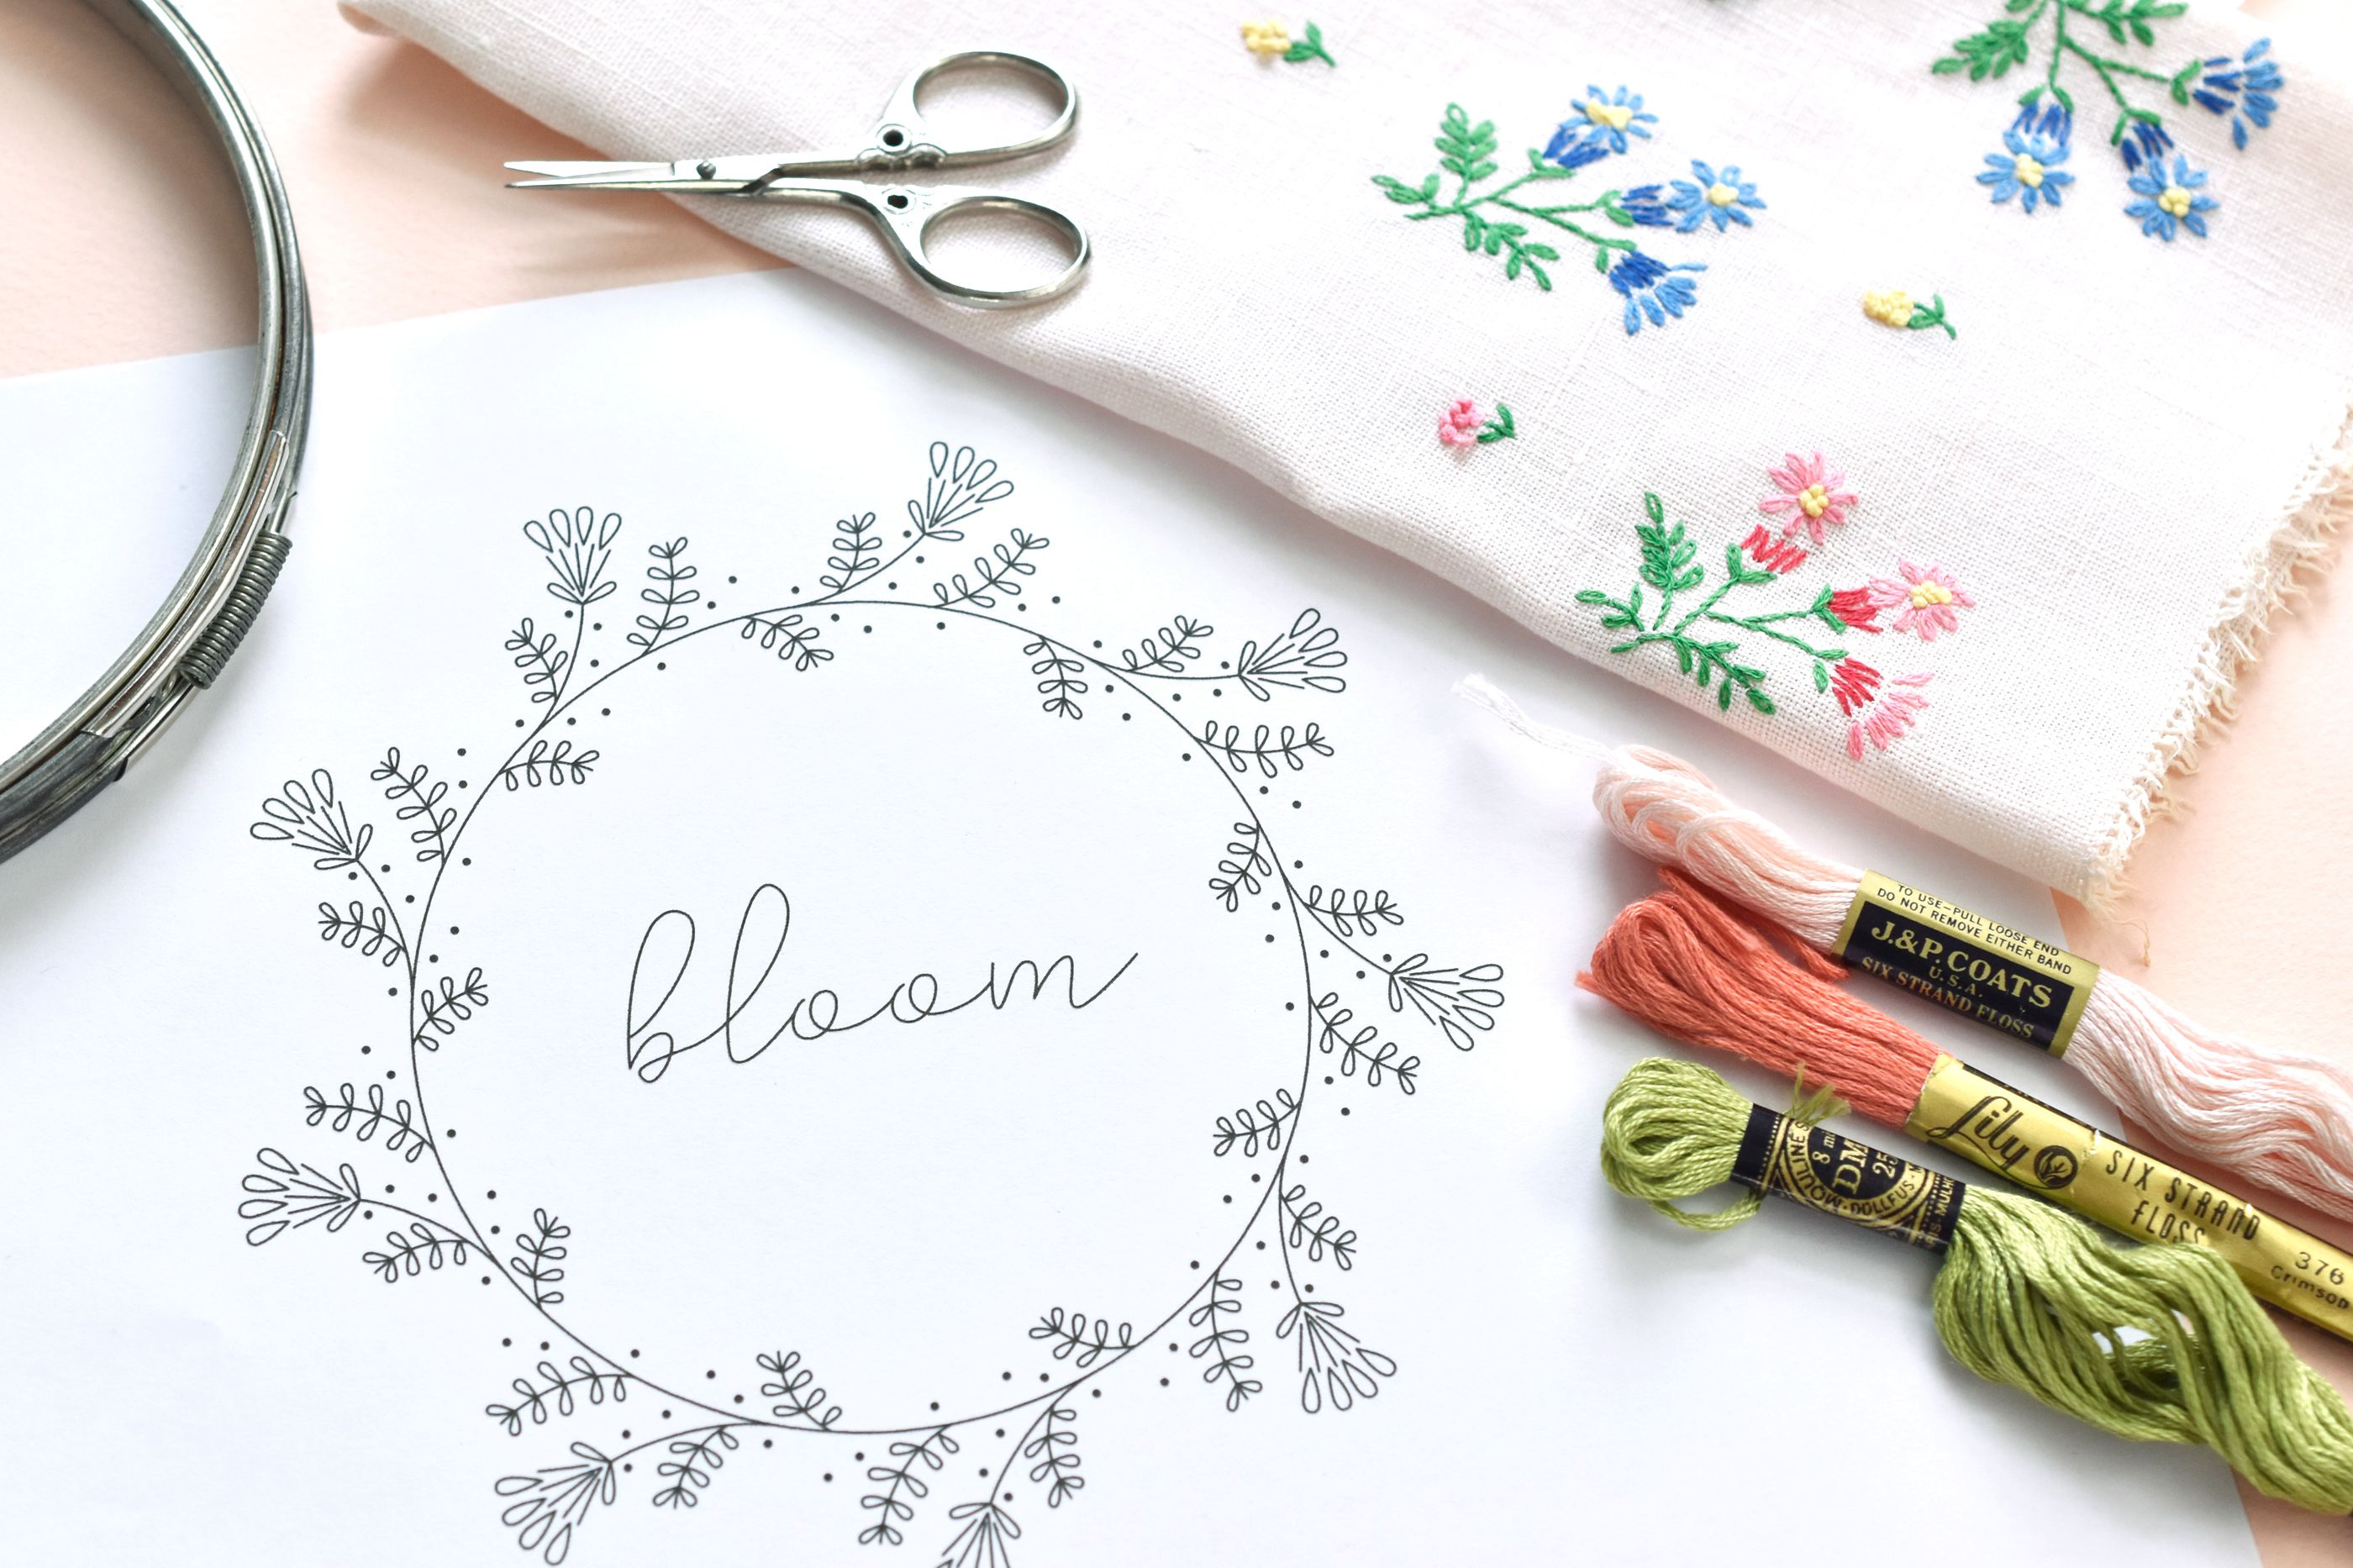 Learn How to Embroider a Vintage-Style Frame With This Free Pattern